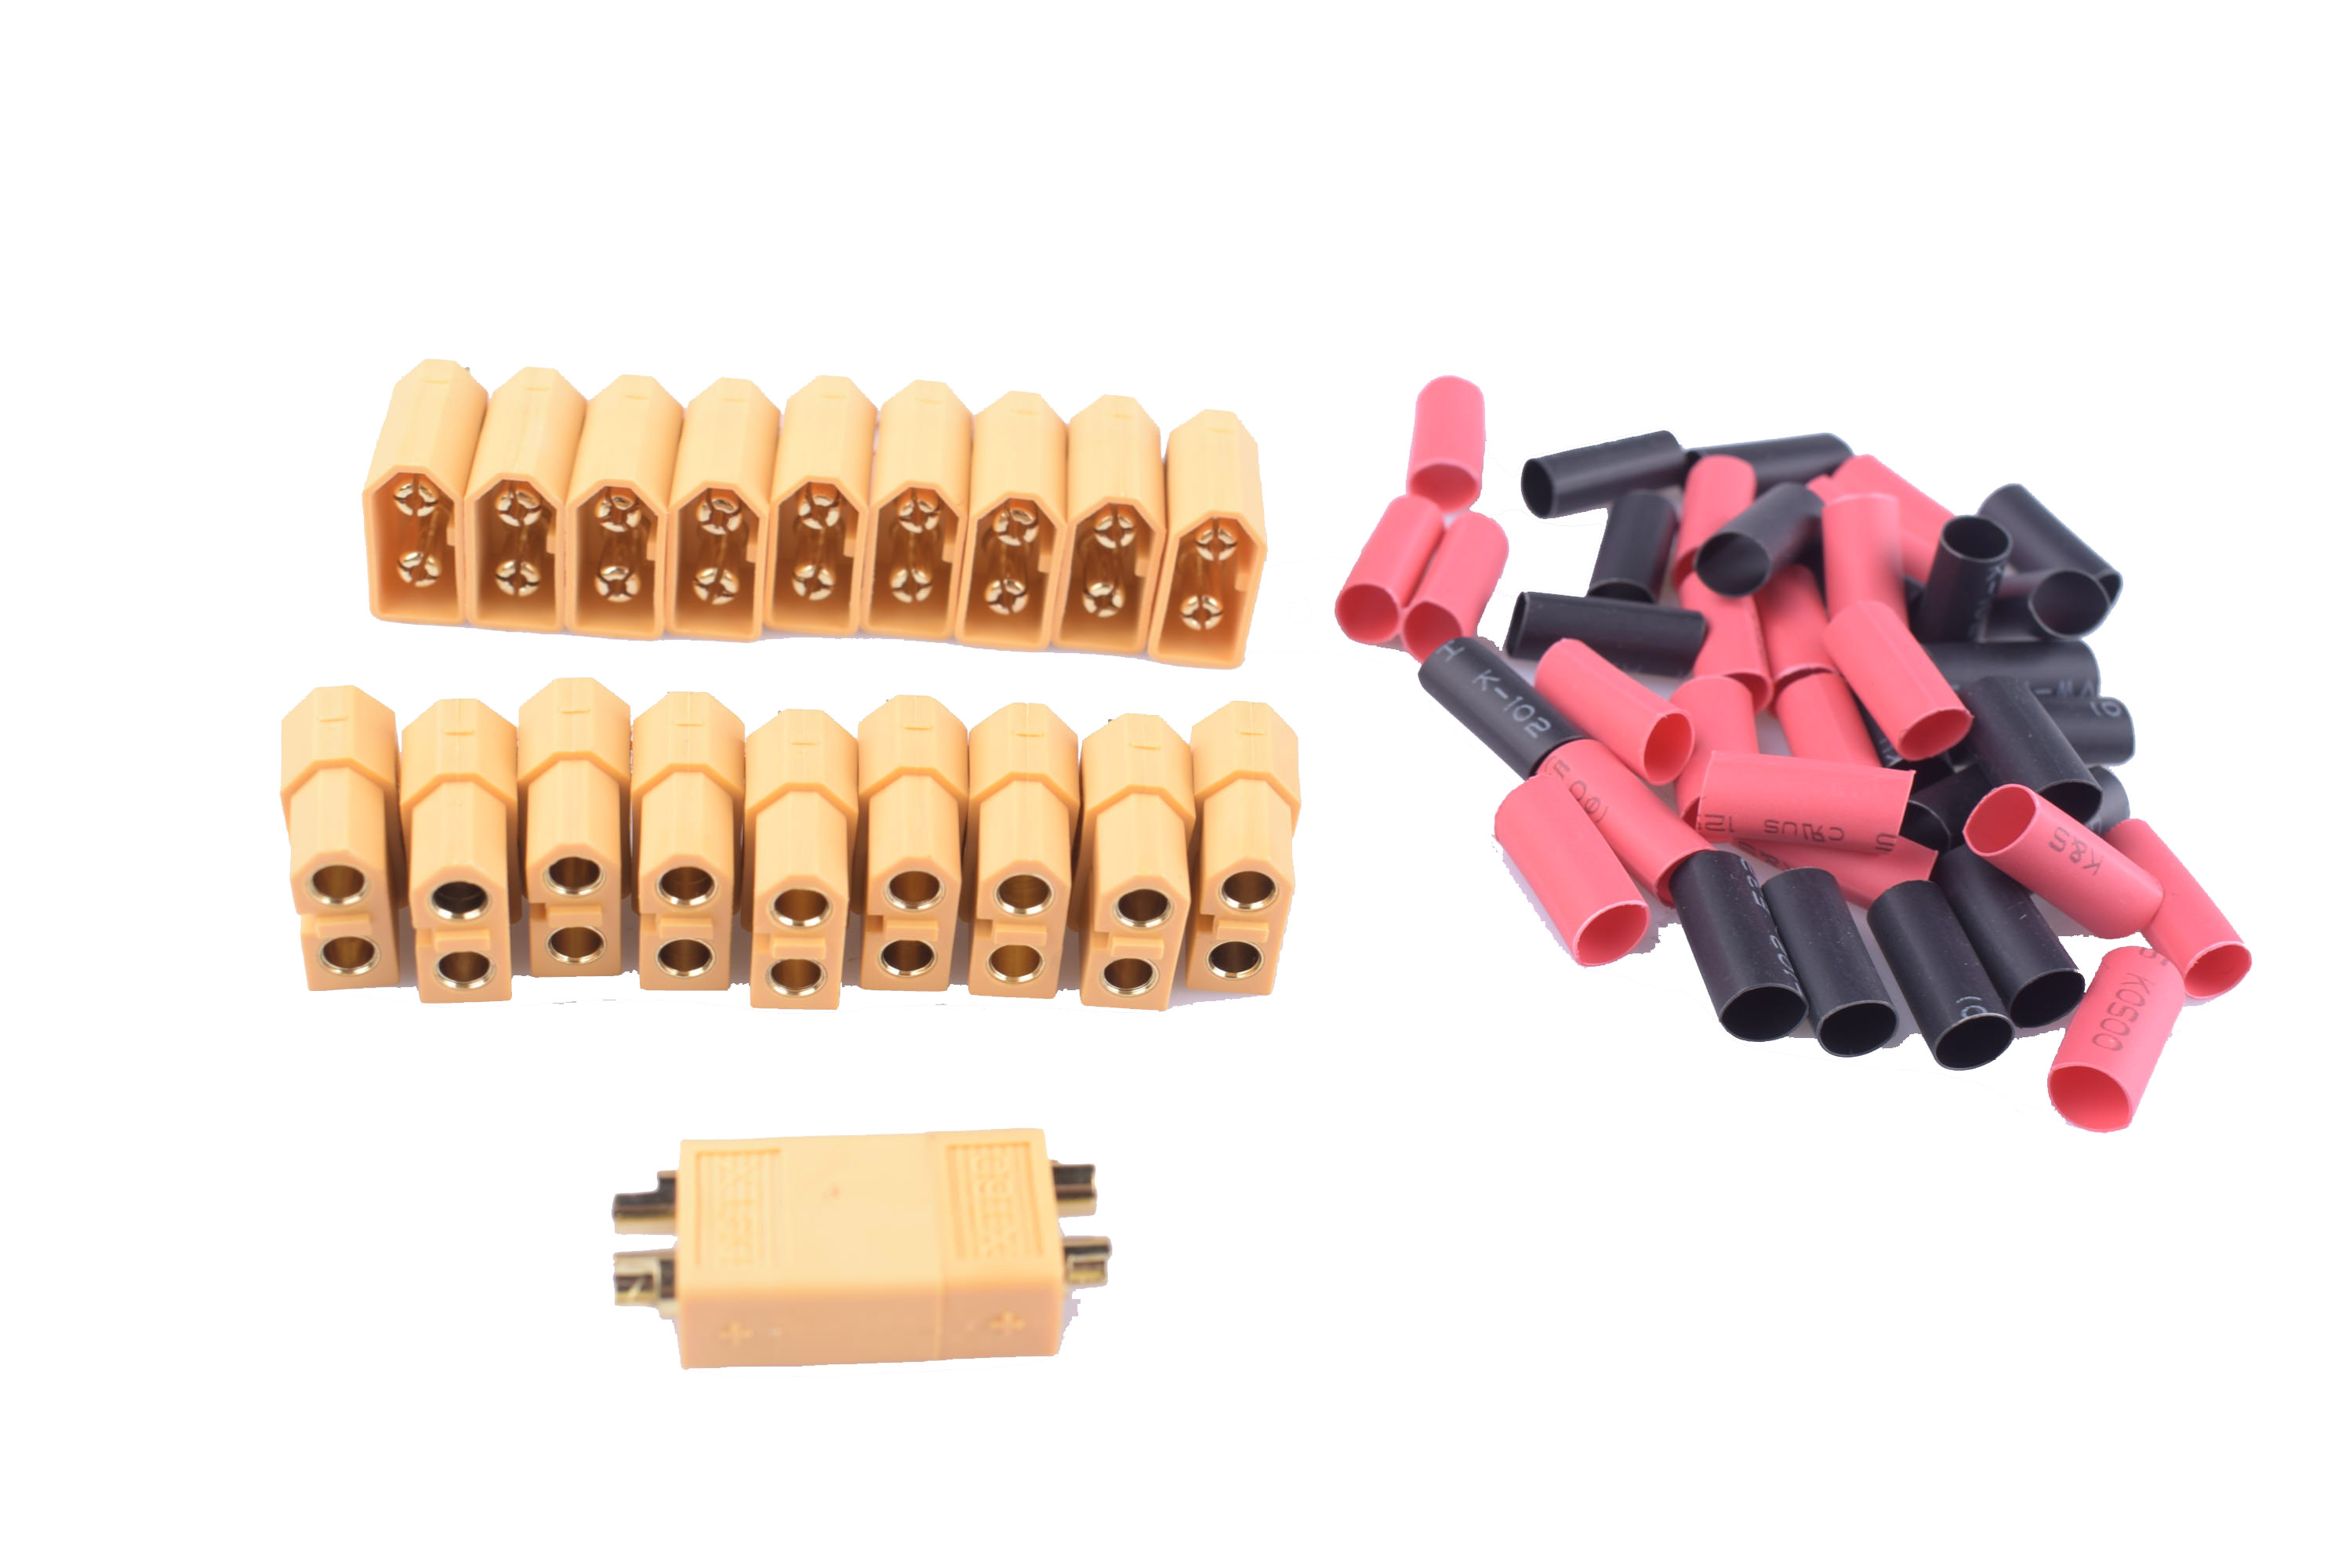 10paris XT60 Battery Connector For Rc Plane And Car Male And Female With 3.5mm Good Gold Plated  Plugs With 4mm Shrink Tube